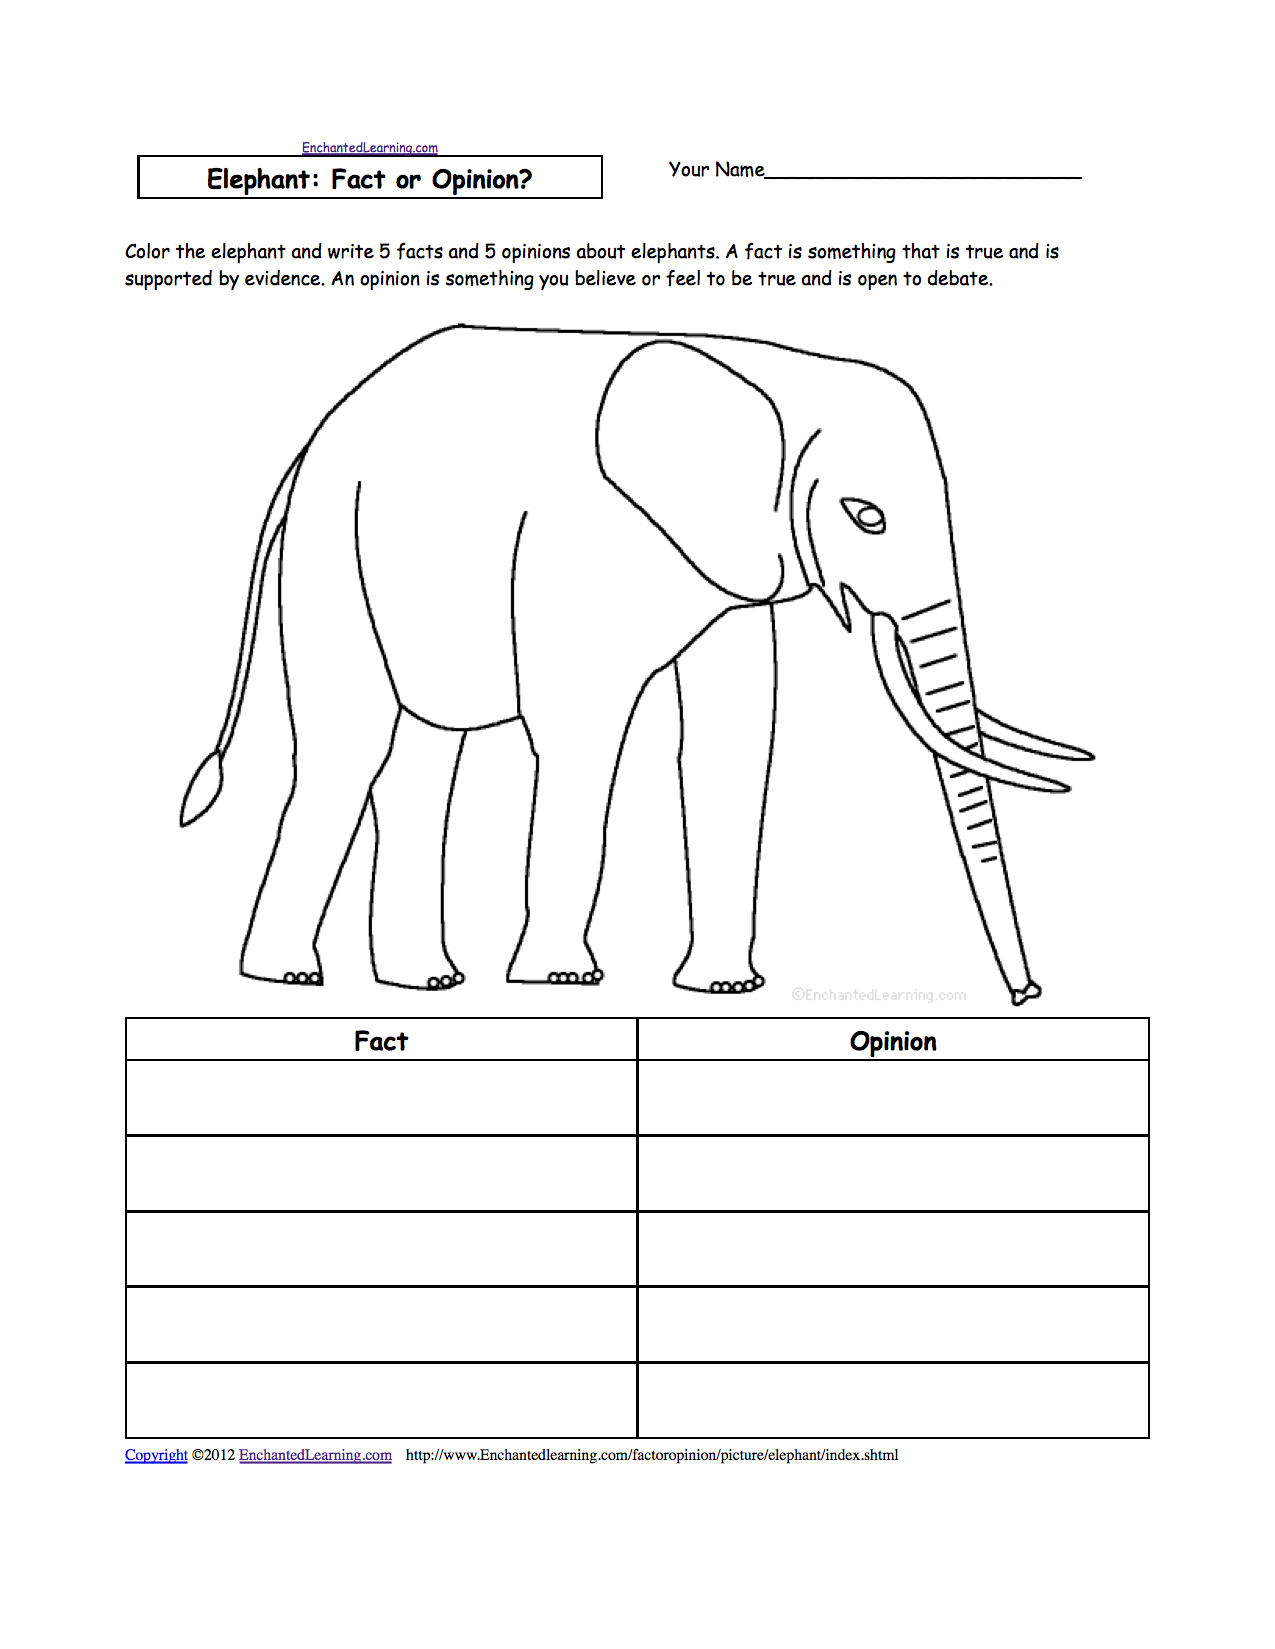 elephants at enchantedlearning com